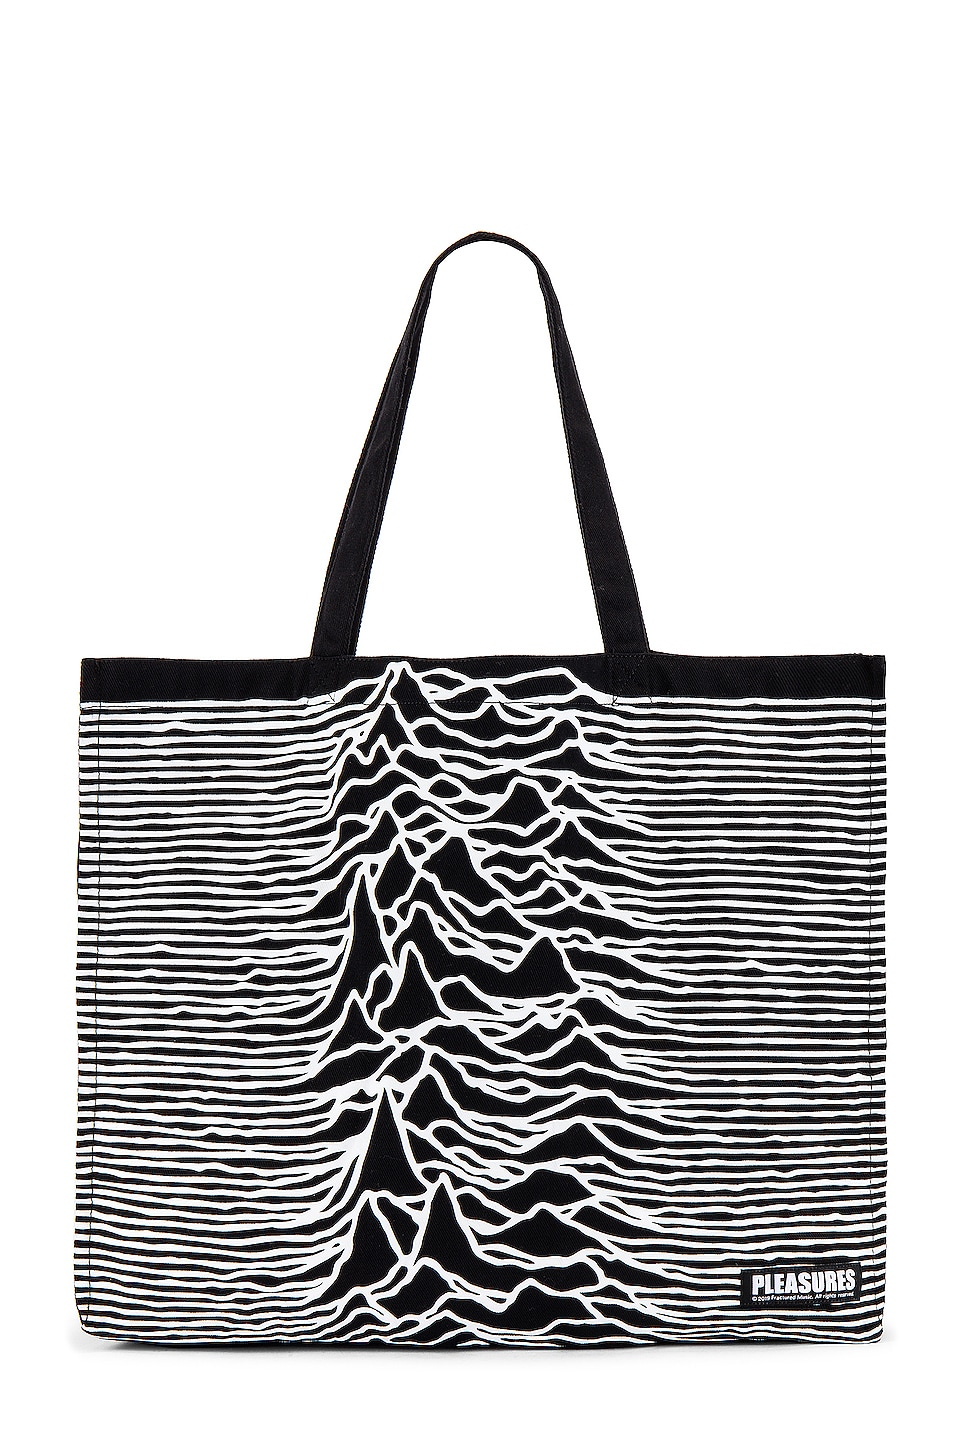 Pleasures BOLSO TOTE JOY DIVISION